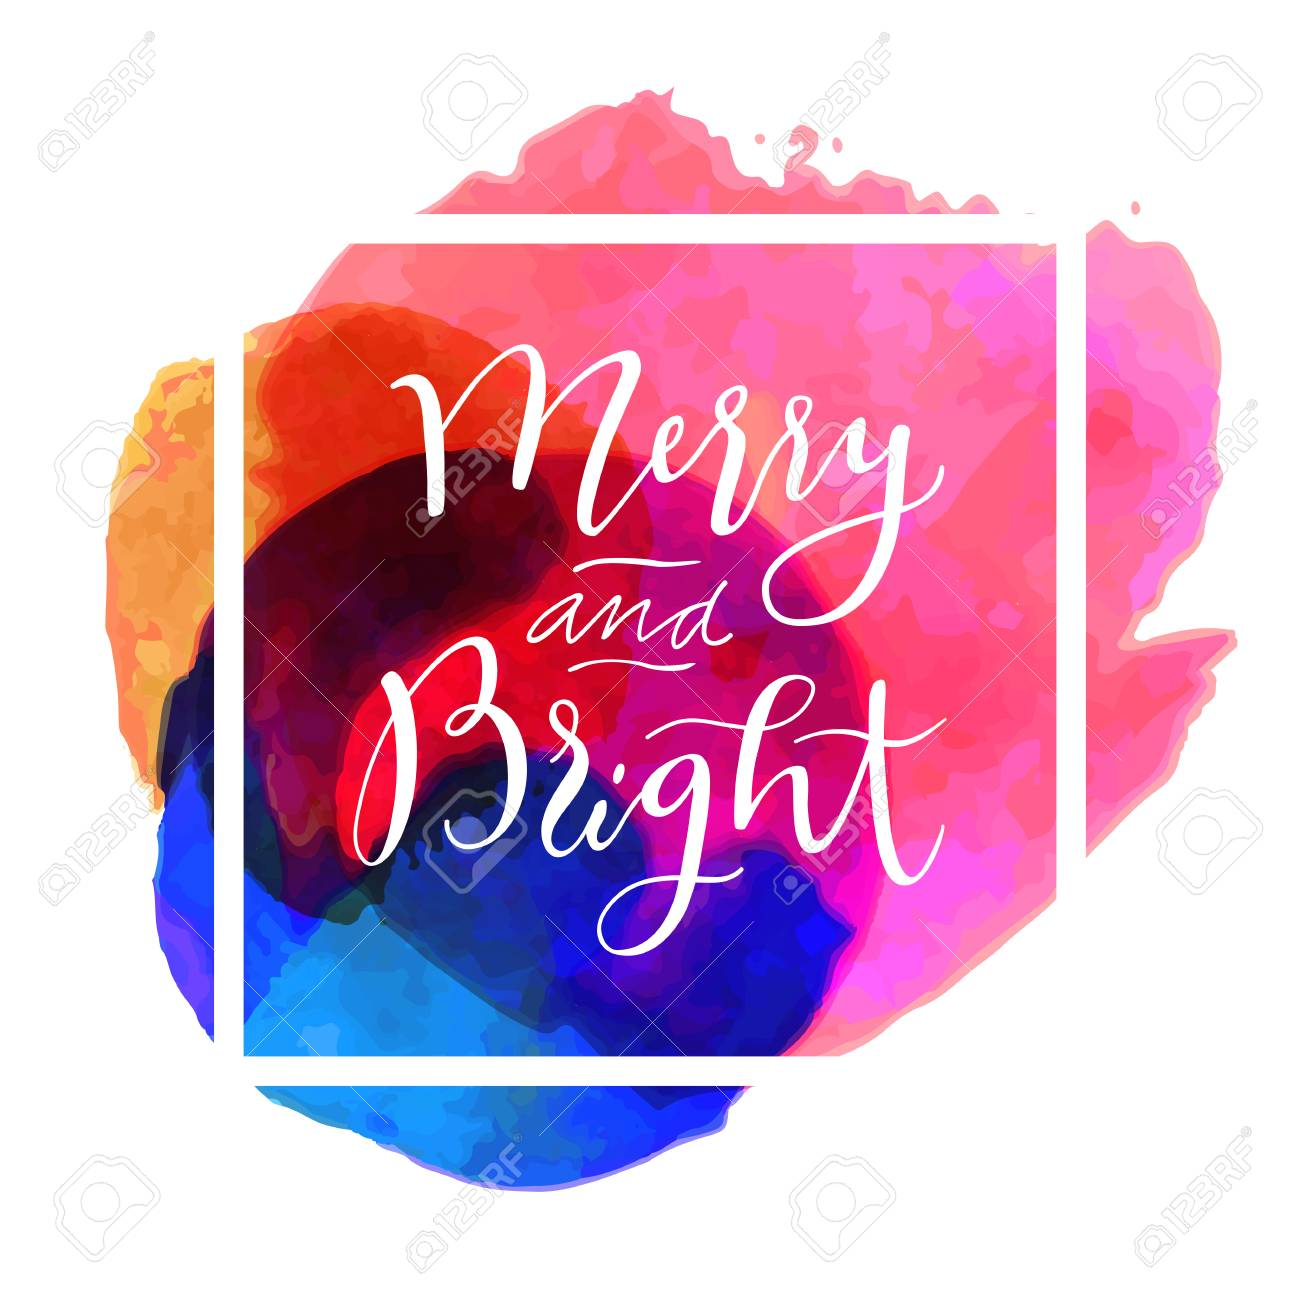 Merry and Bright. Modern calligraphy. Handwritten inspirational Merry Christmas quote. Calligraphic hand lettered greeting card with watercolor, square frame. Vector illustration - 64873555